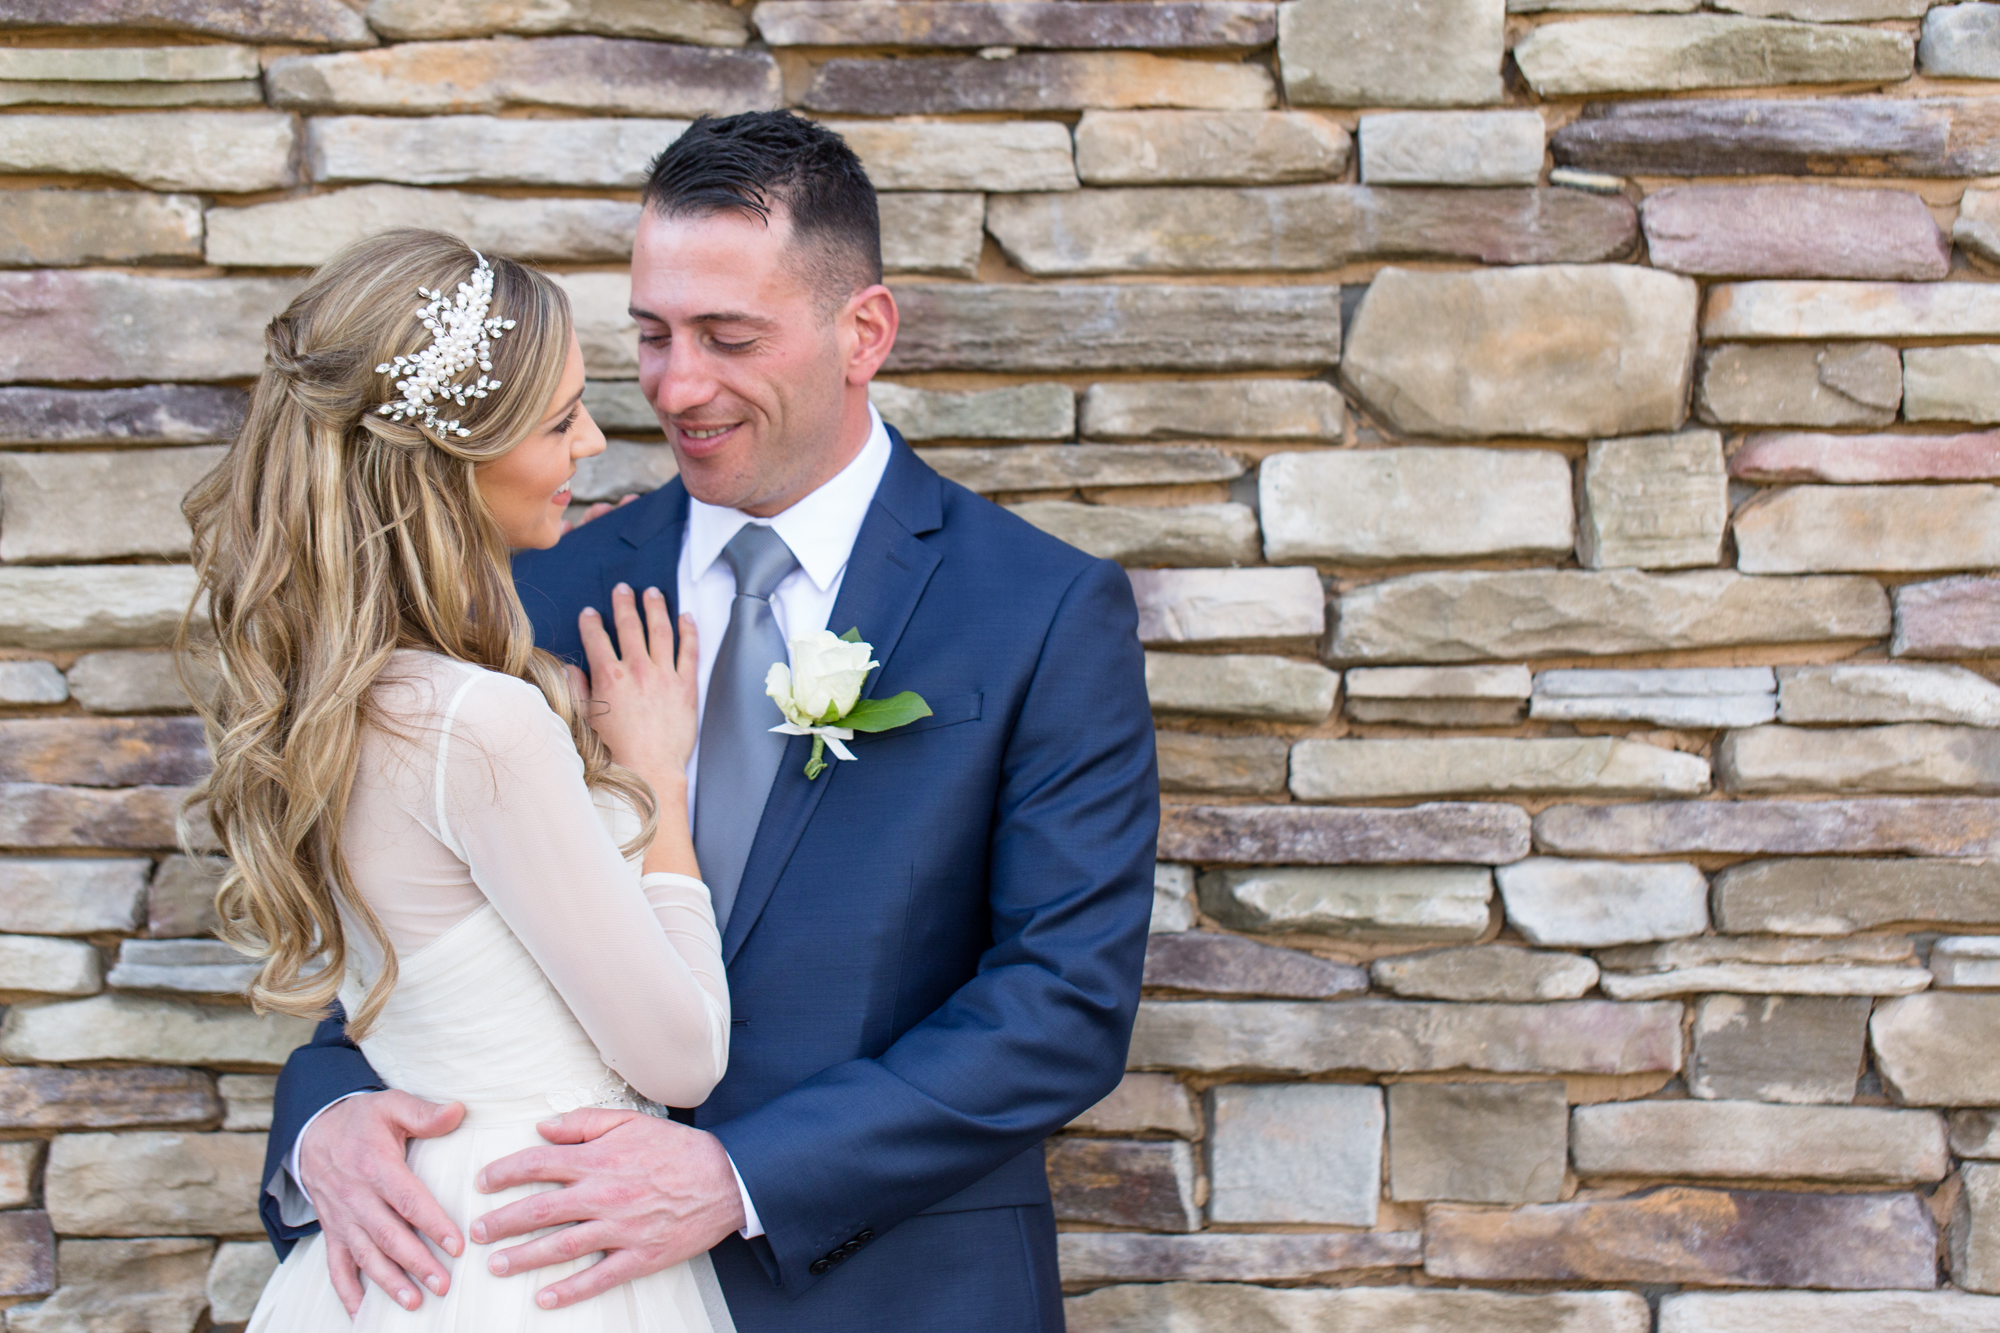 41Allegra_Anderson_Photography_CT_Wedding_Photographer_Riverview_Simsbury_Saleh_Web